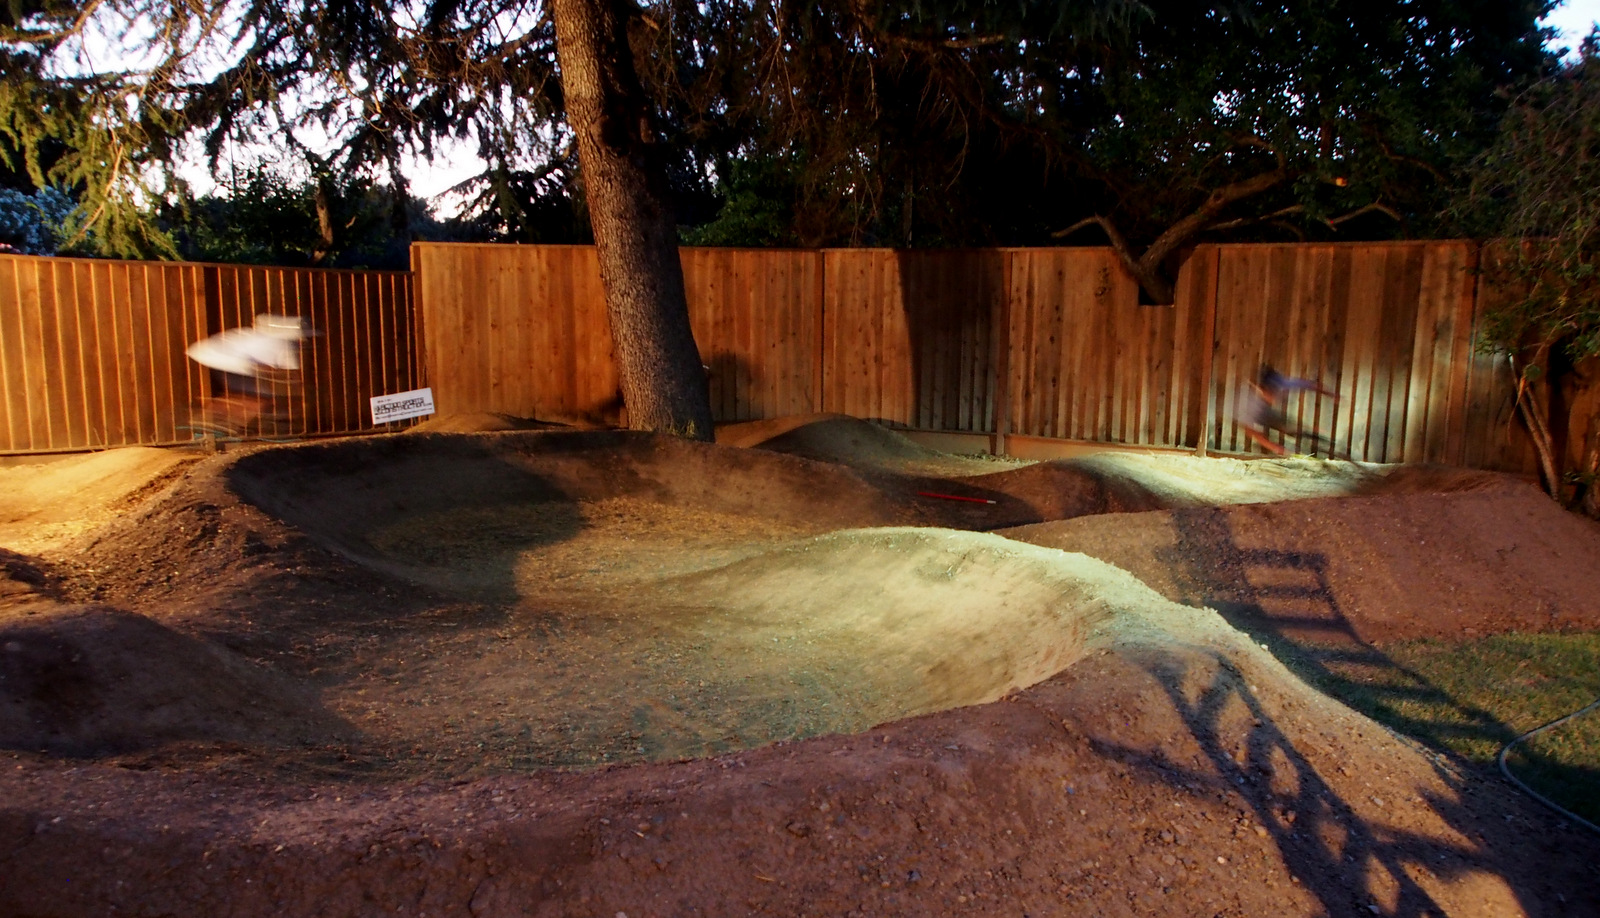 Feature: The Backyard Pump Track - Construction